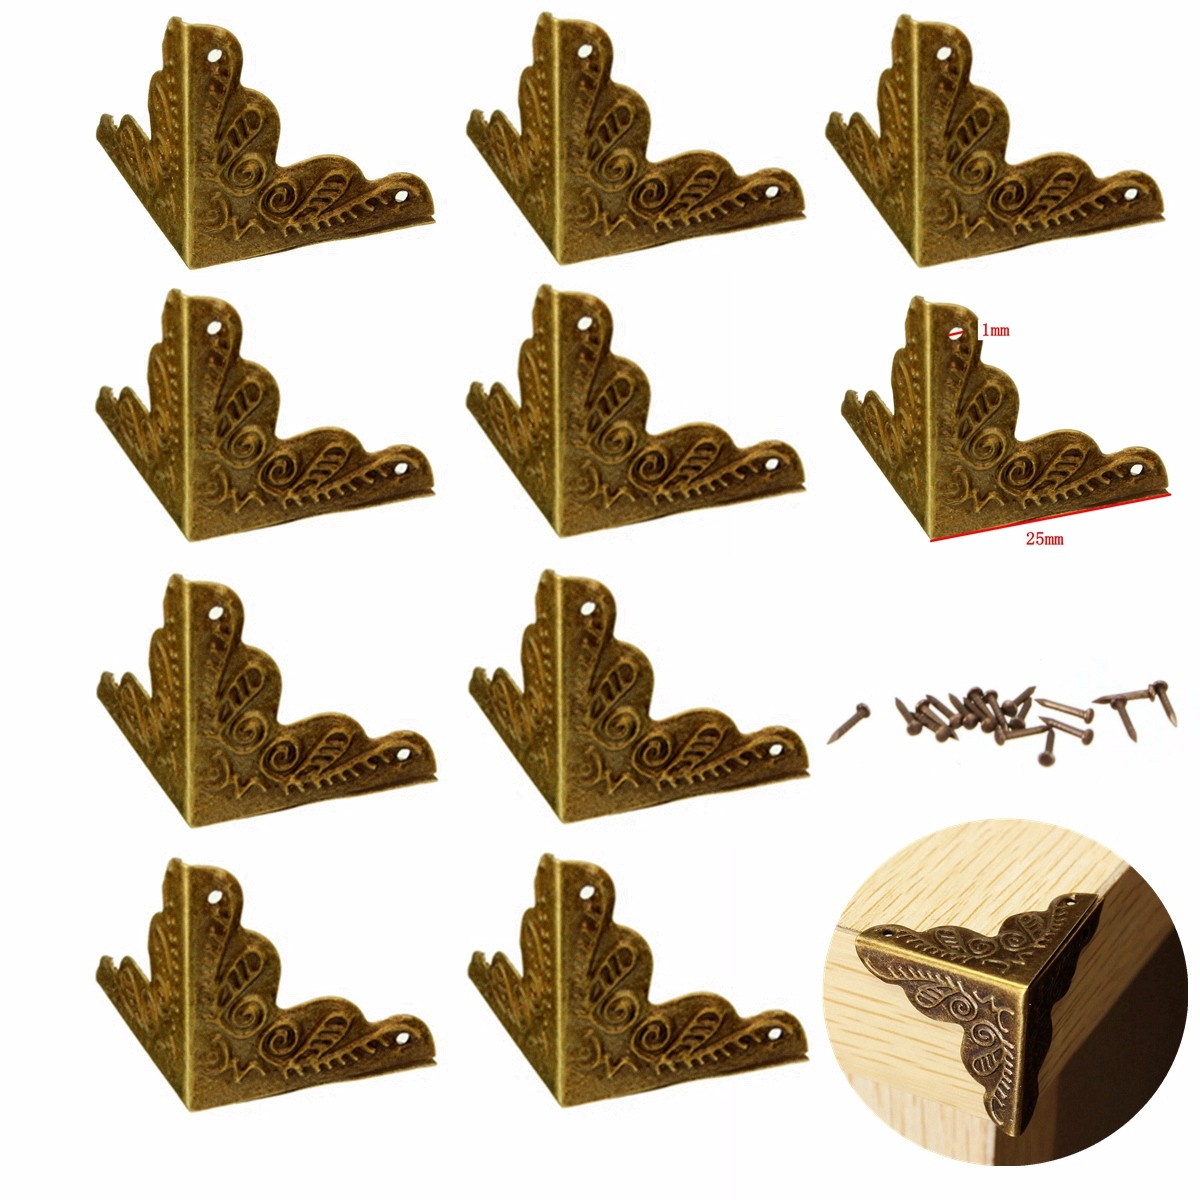 MTGATHER 10Pcs Antique Jewelry Box Corner Foot Wooden Case Corner Protector Tone Flower Pattern Carved Metal Crafts Bronze metal bar led marquee sign light up vintage signs light bar indoor deration